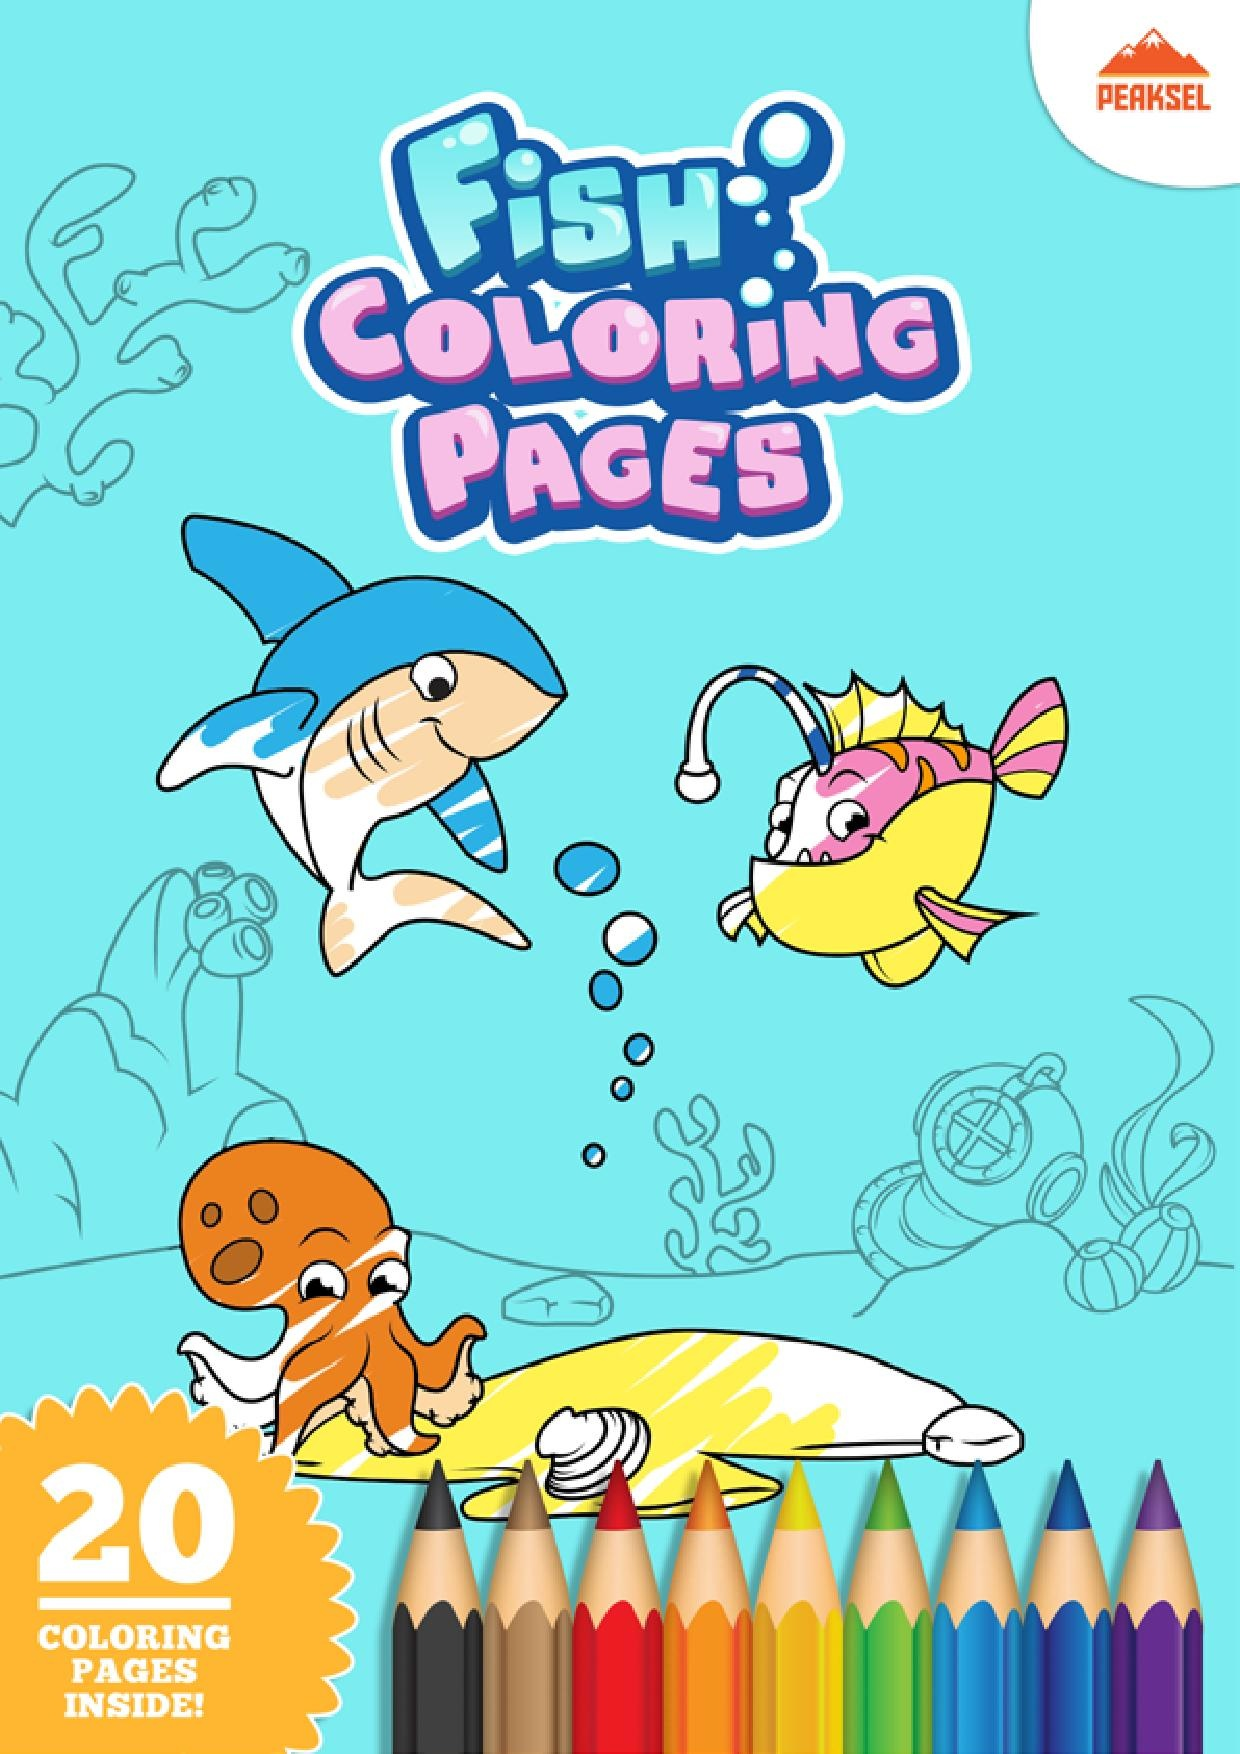 File:Fish Coloring Pages PDF.pdf - Wikimedia Commons